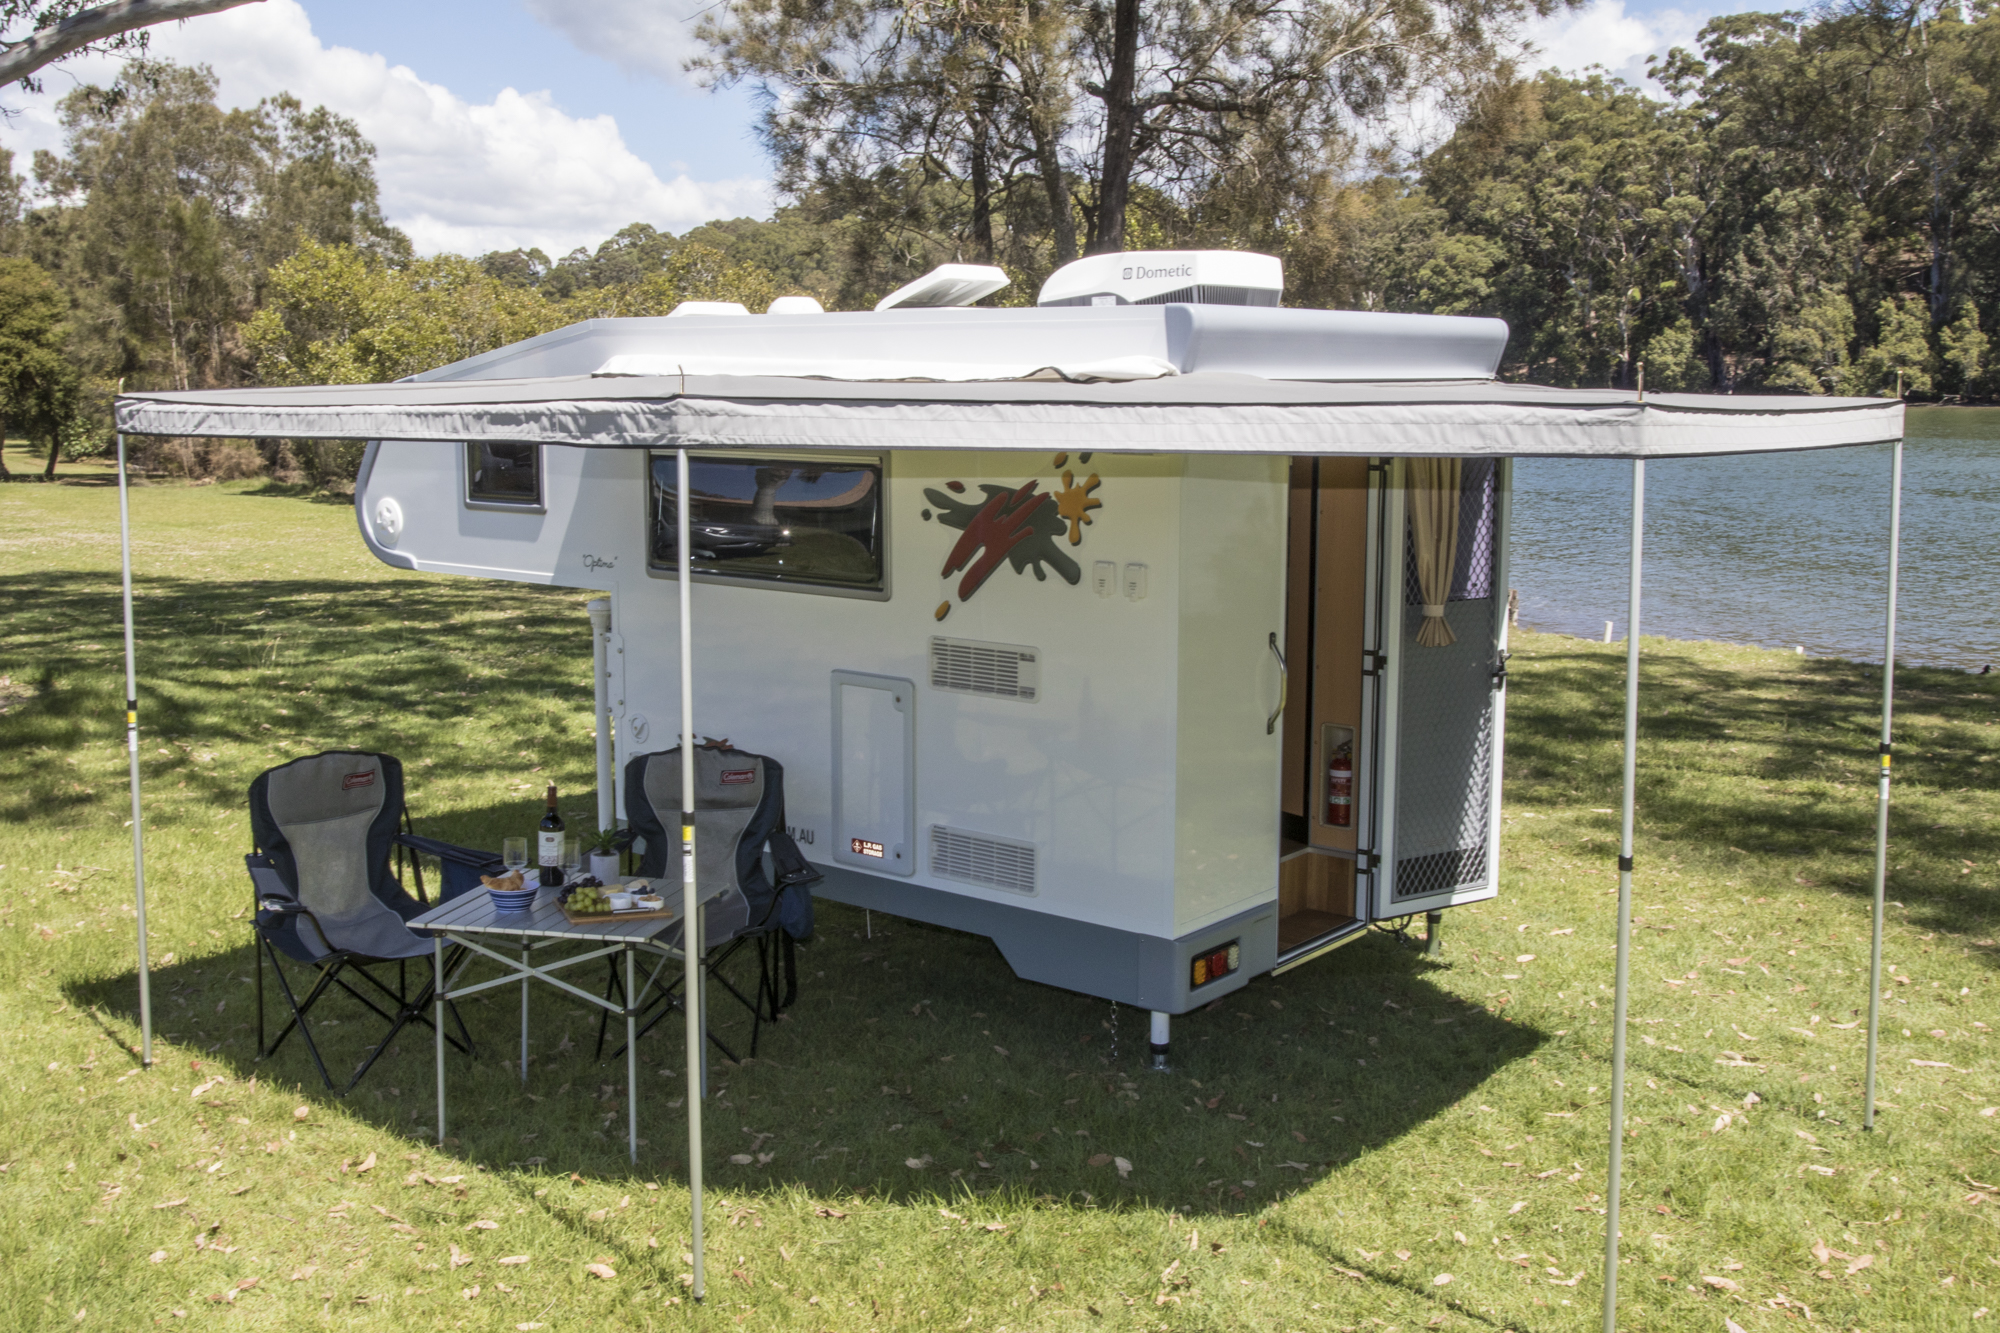 Review: Ozcape Campers Optima slide-on